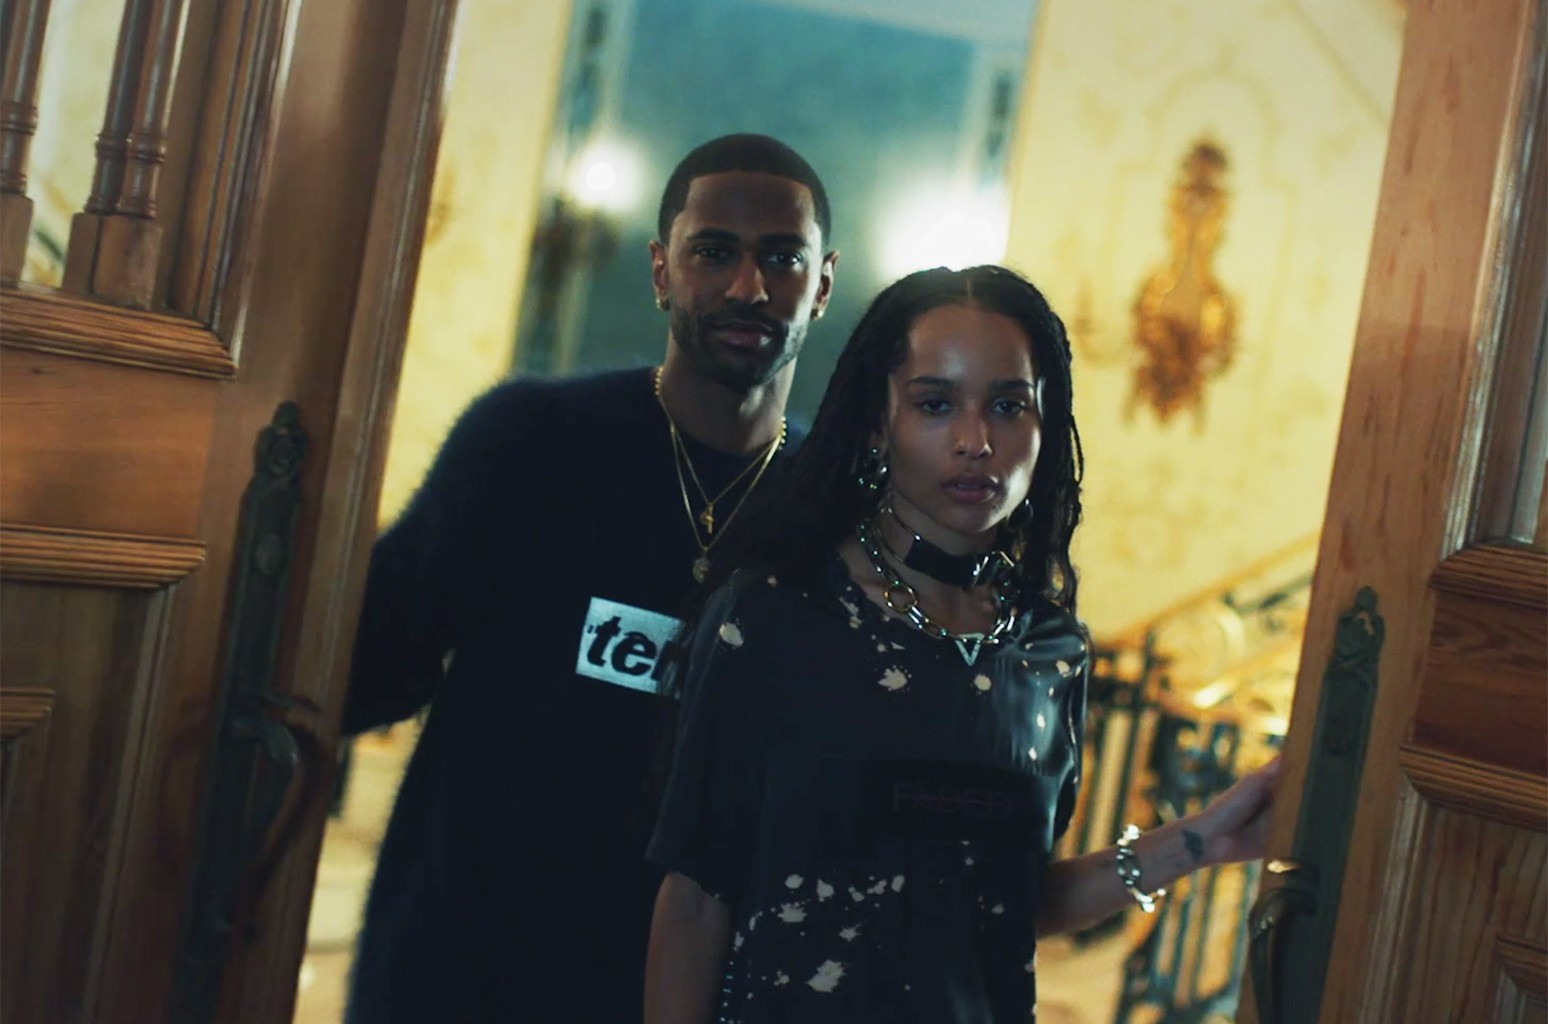 Big Sean and Zoë Kravitz in the Alexander Wang AW16 Campaign